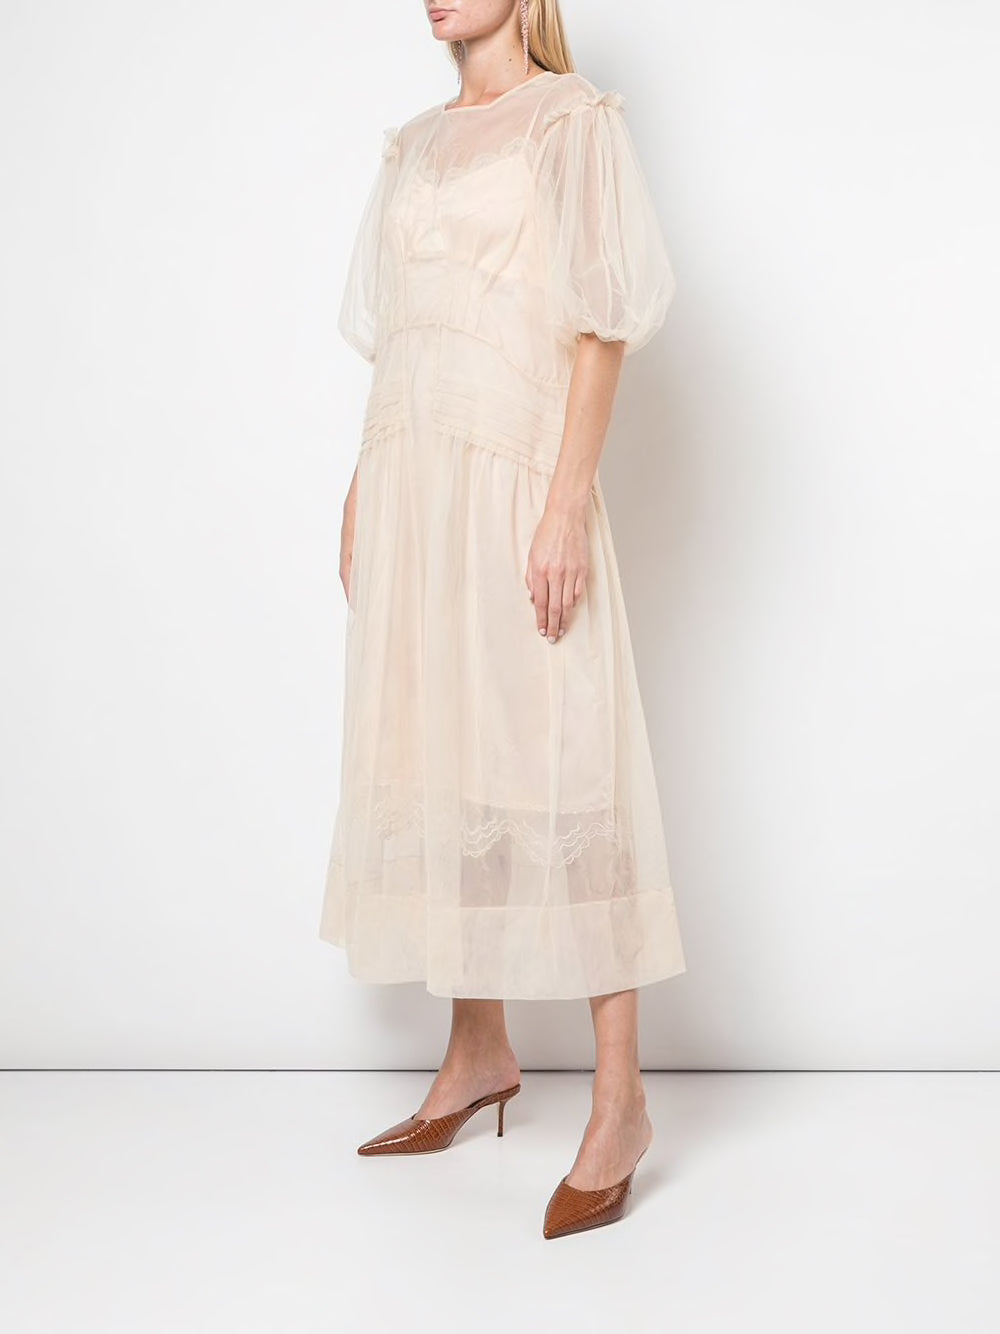 SIMONE ROCHA WOMEN PIN TUCK DRESS